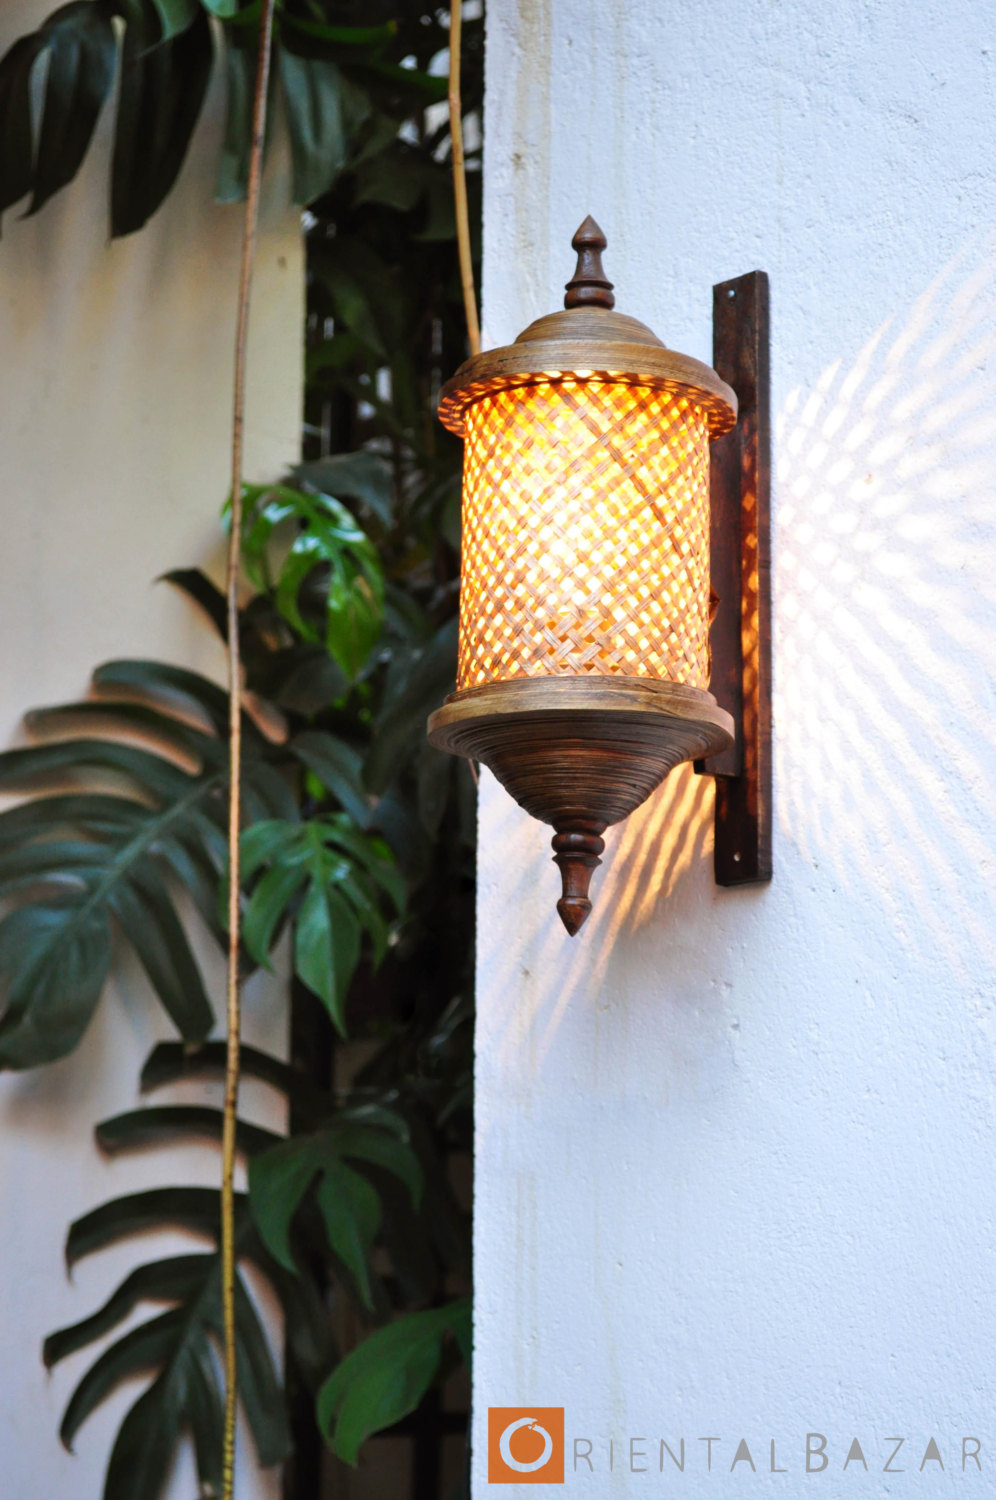 handmade outdoor lighting. 16 Decorative Handmade Outdoor Lighting Designs N